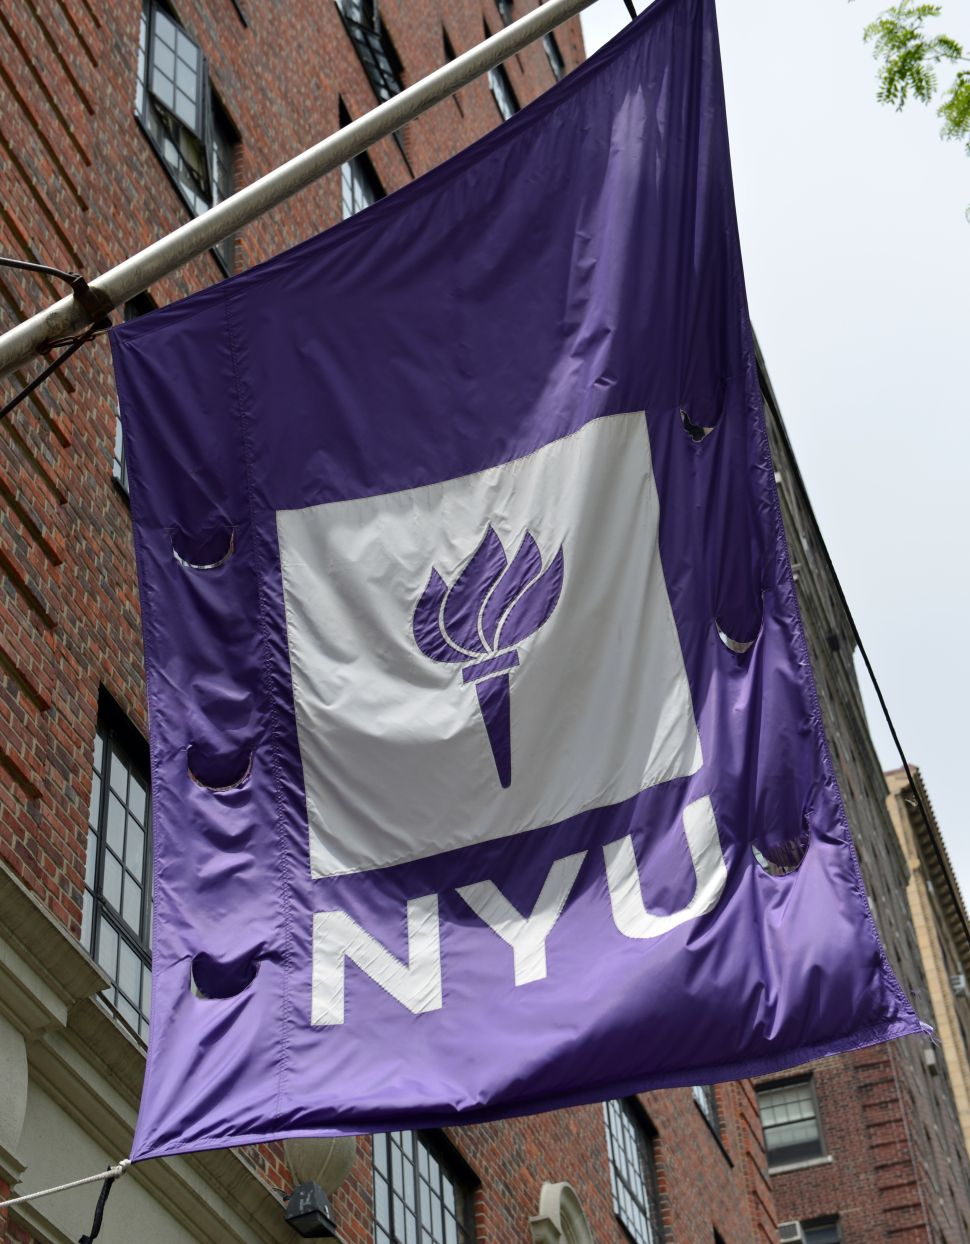 Afternoon Bulletin: NYU Trustee Trouble and More